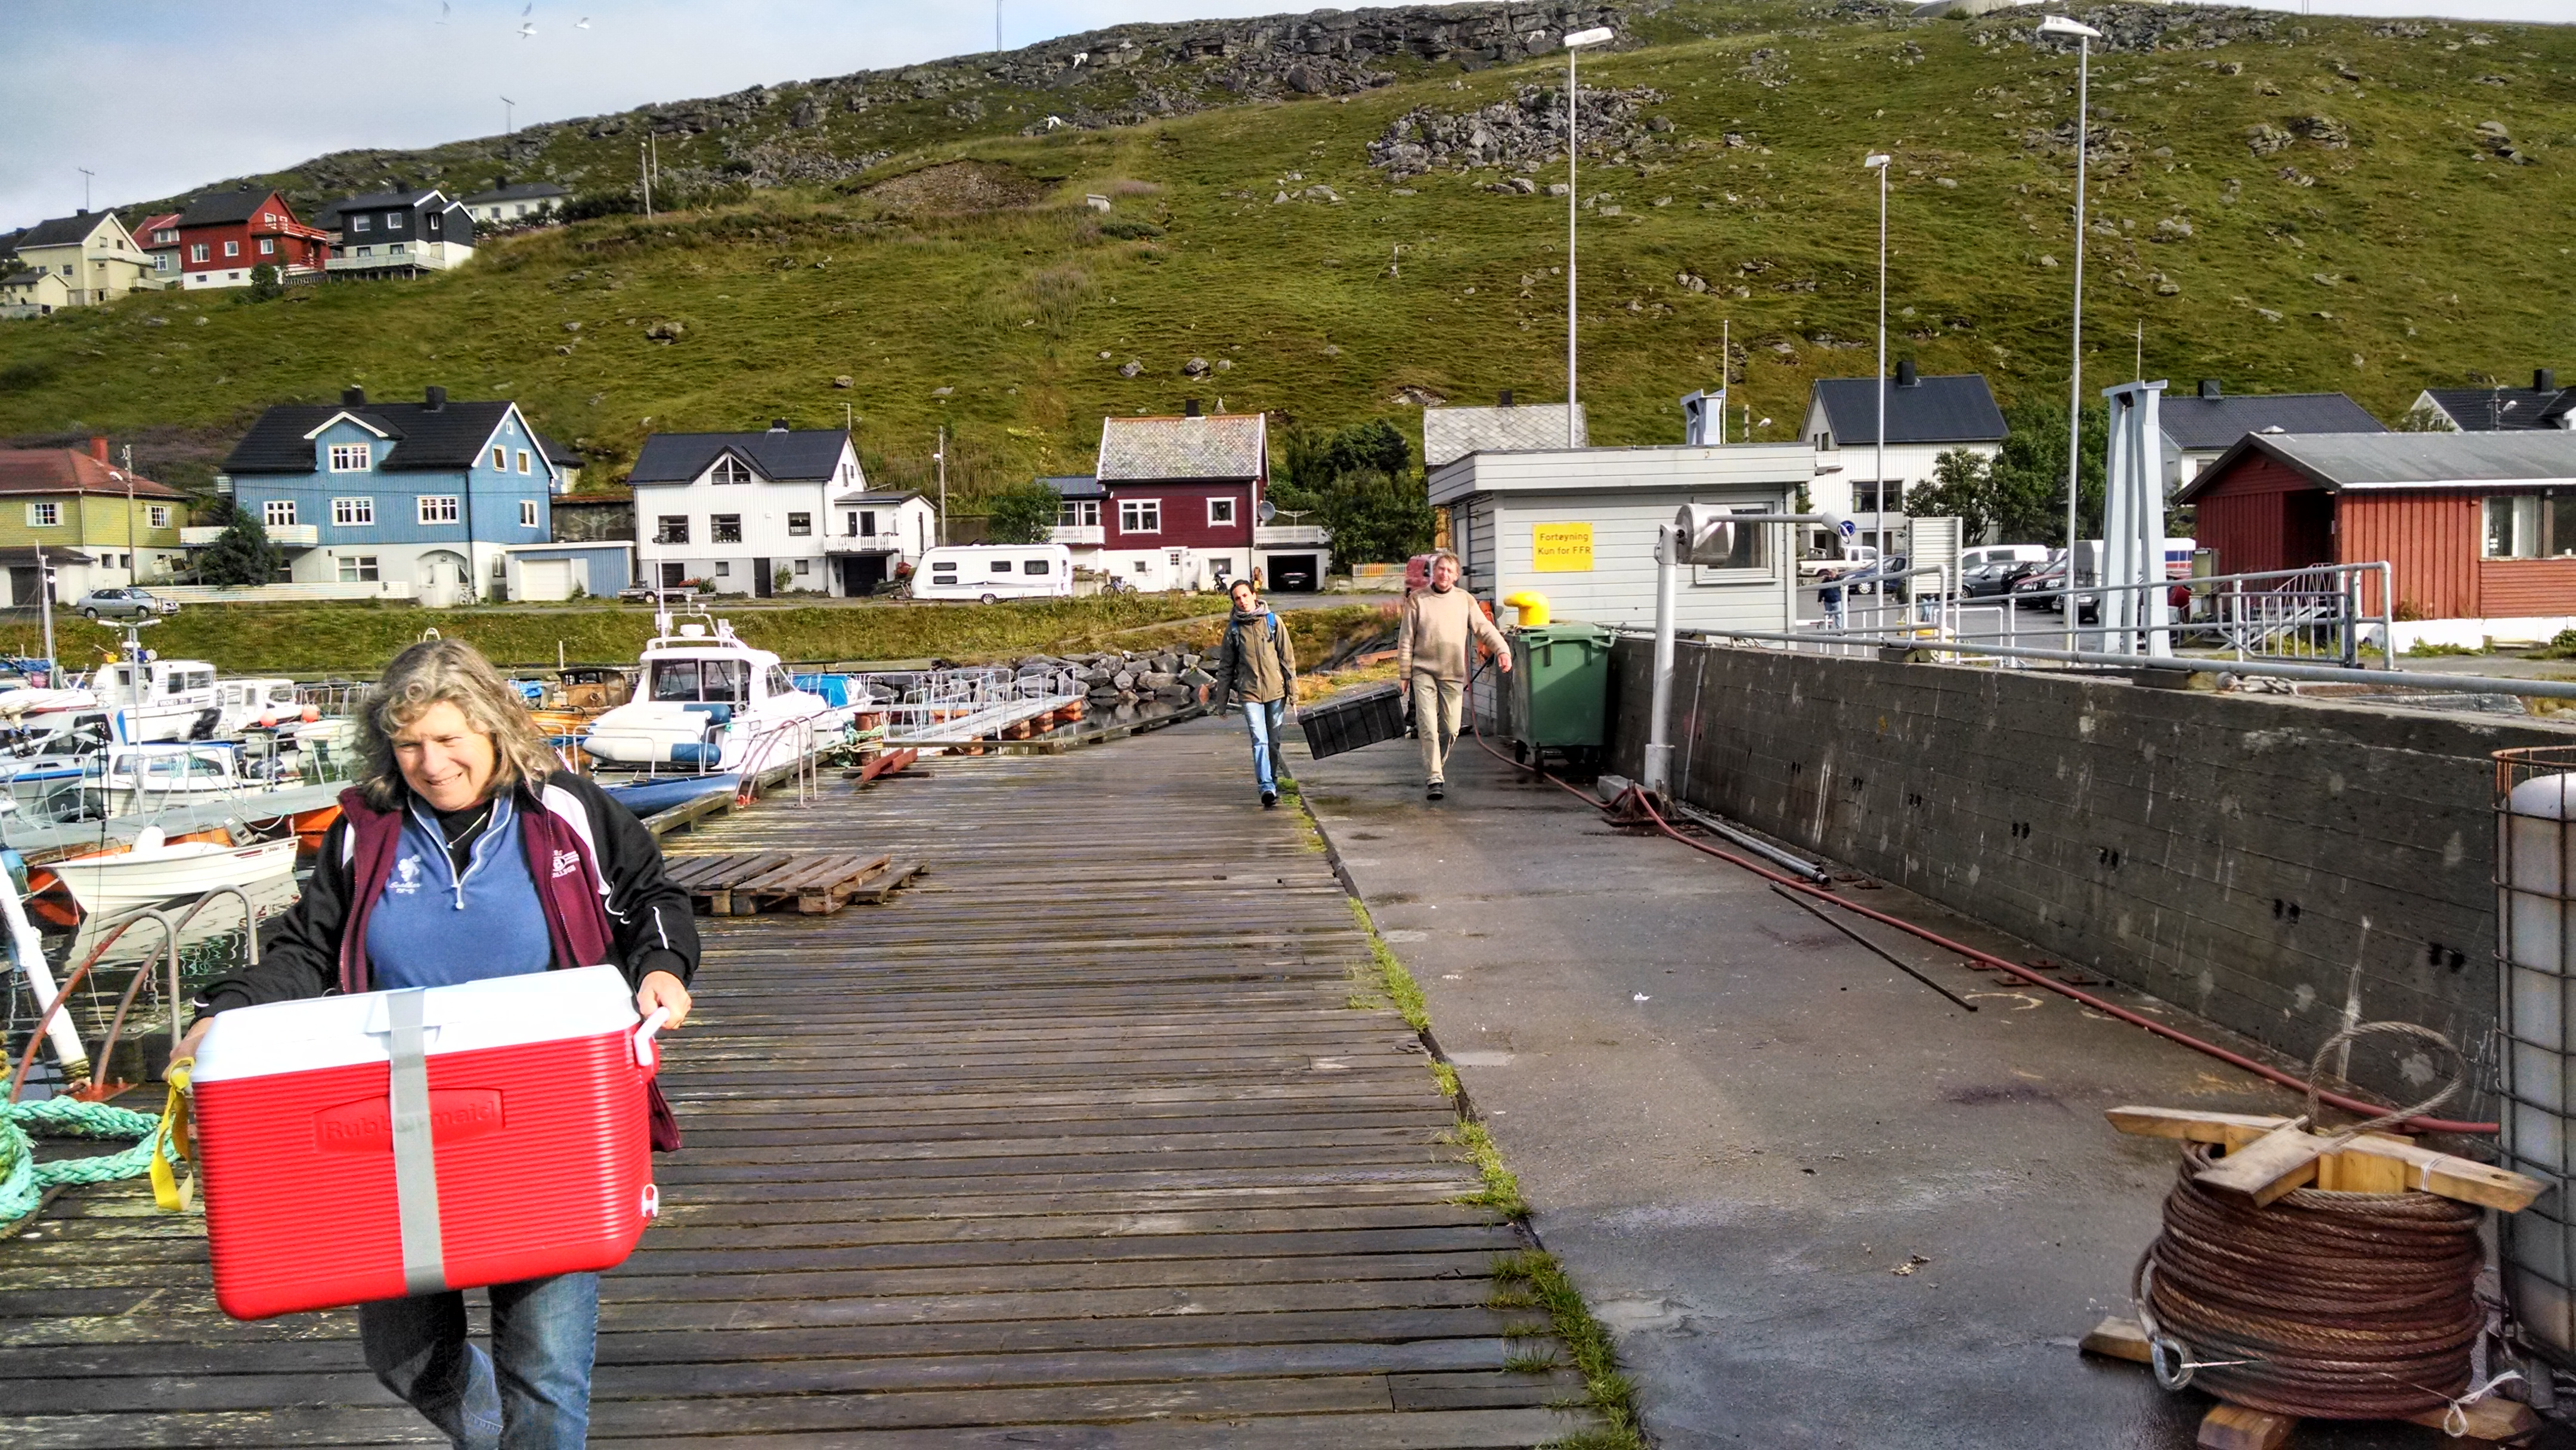 Lugging our gear from the Hurtigruten to the Masøyespressen